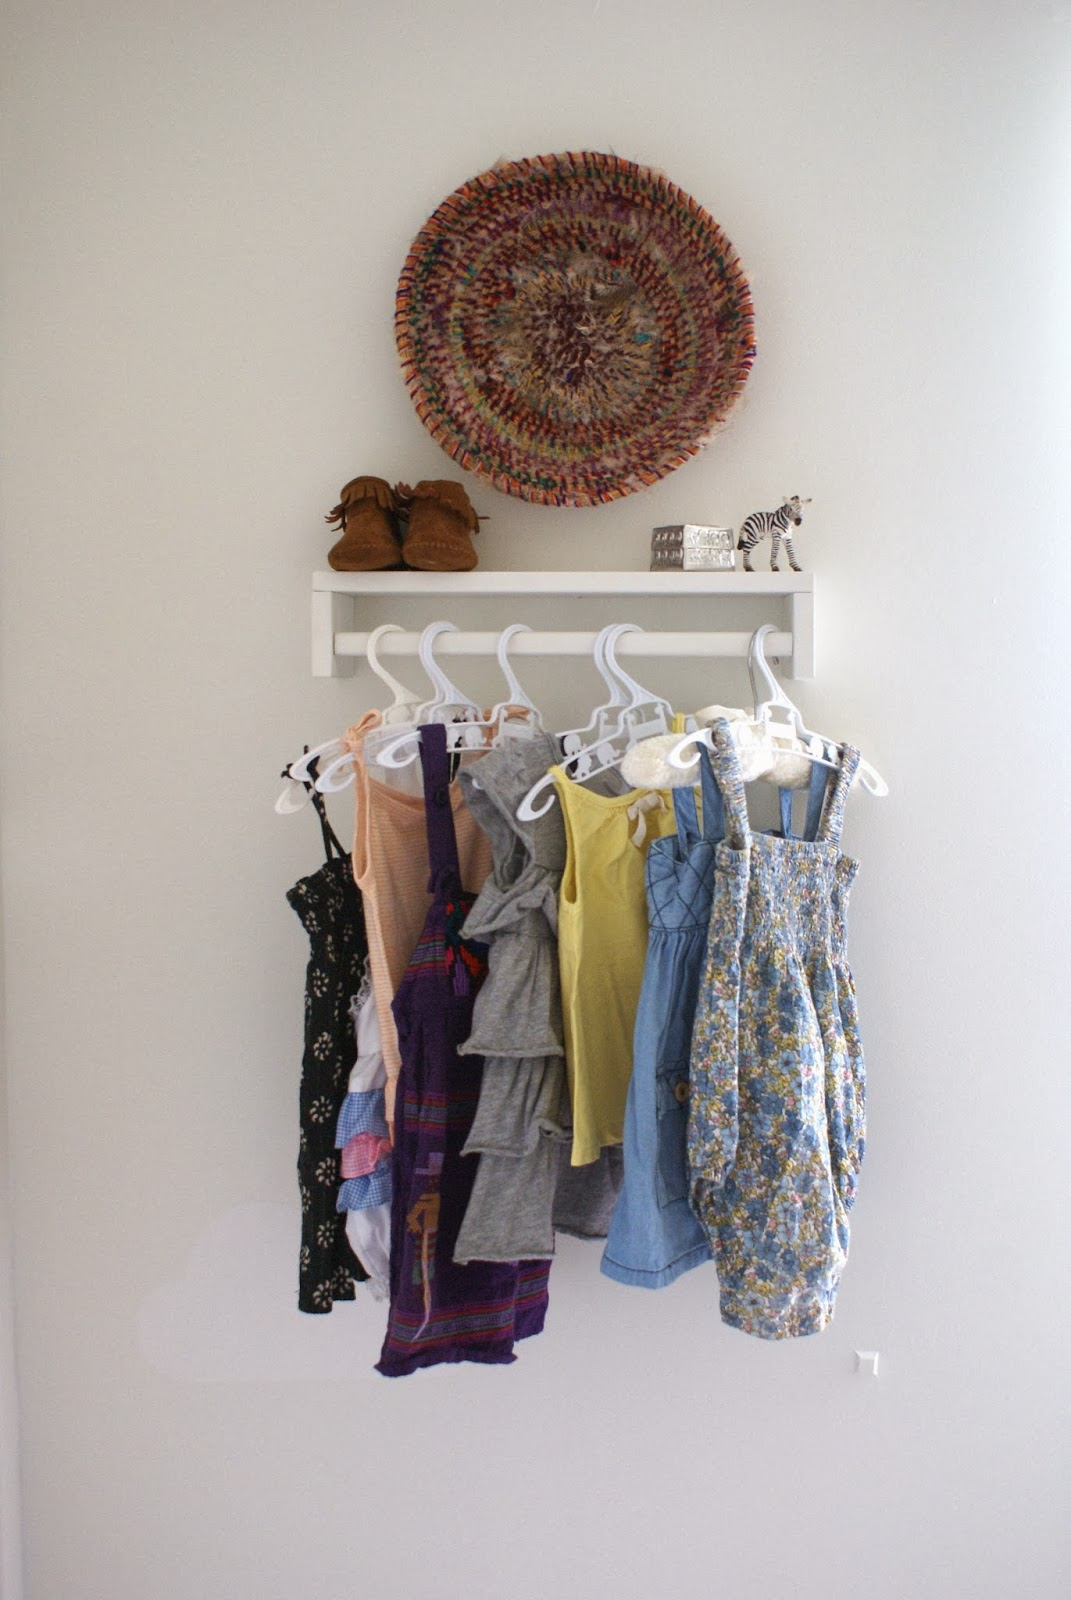 Diy ikea spice rack hack clothing rack